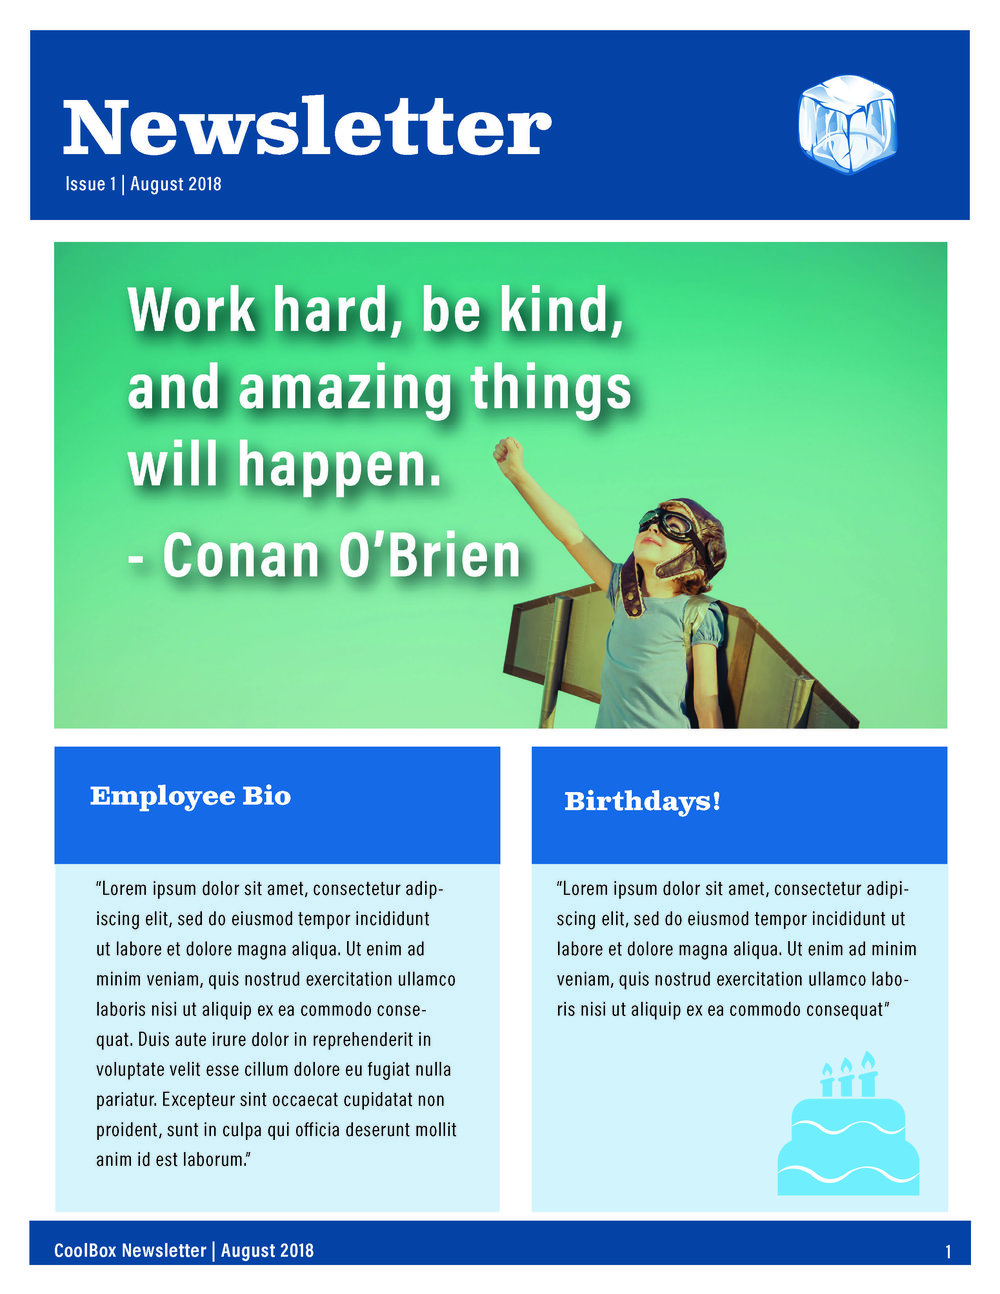 CoolBox Newsletter Template_Page_1.jpg